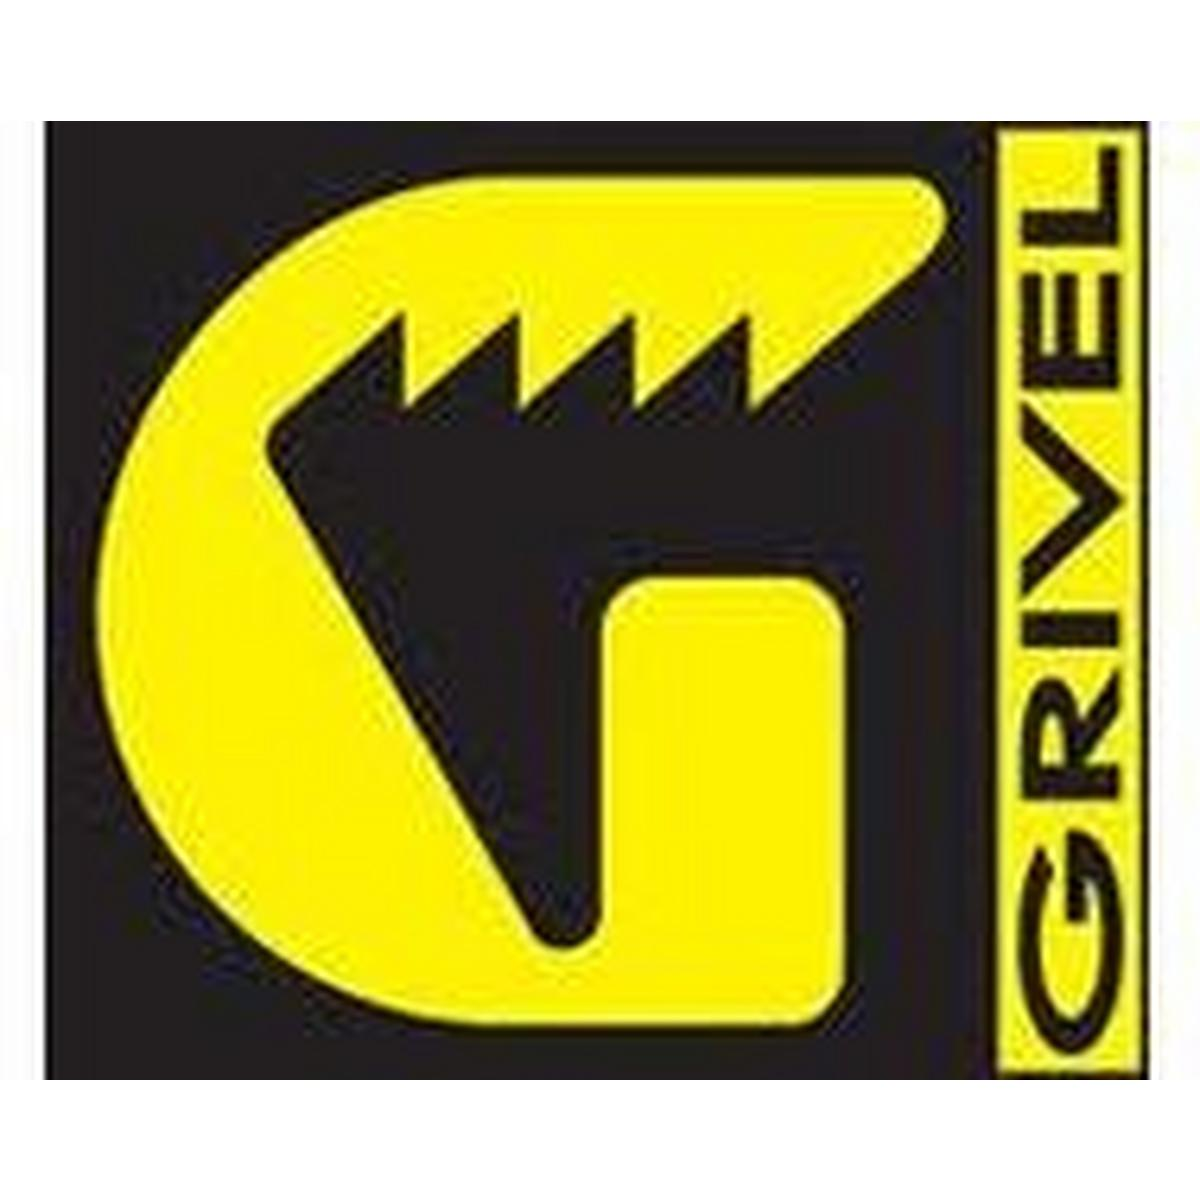 Grivel Crampons Spare/Accessory: Asymmetric Bar for G10 / G12 / G14